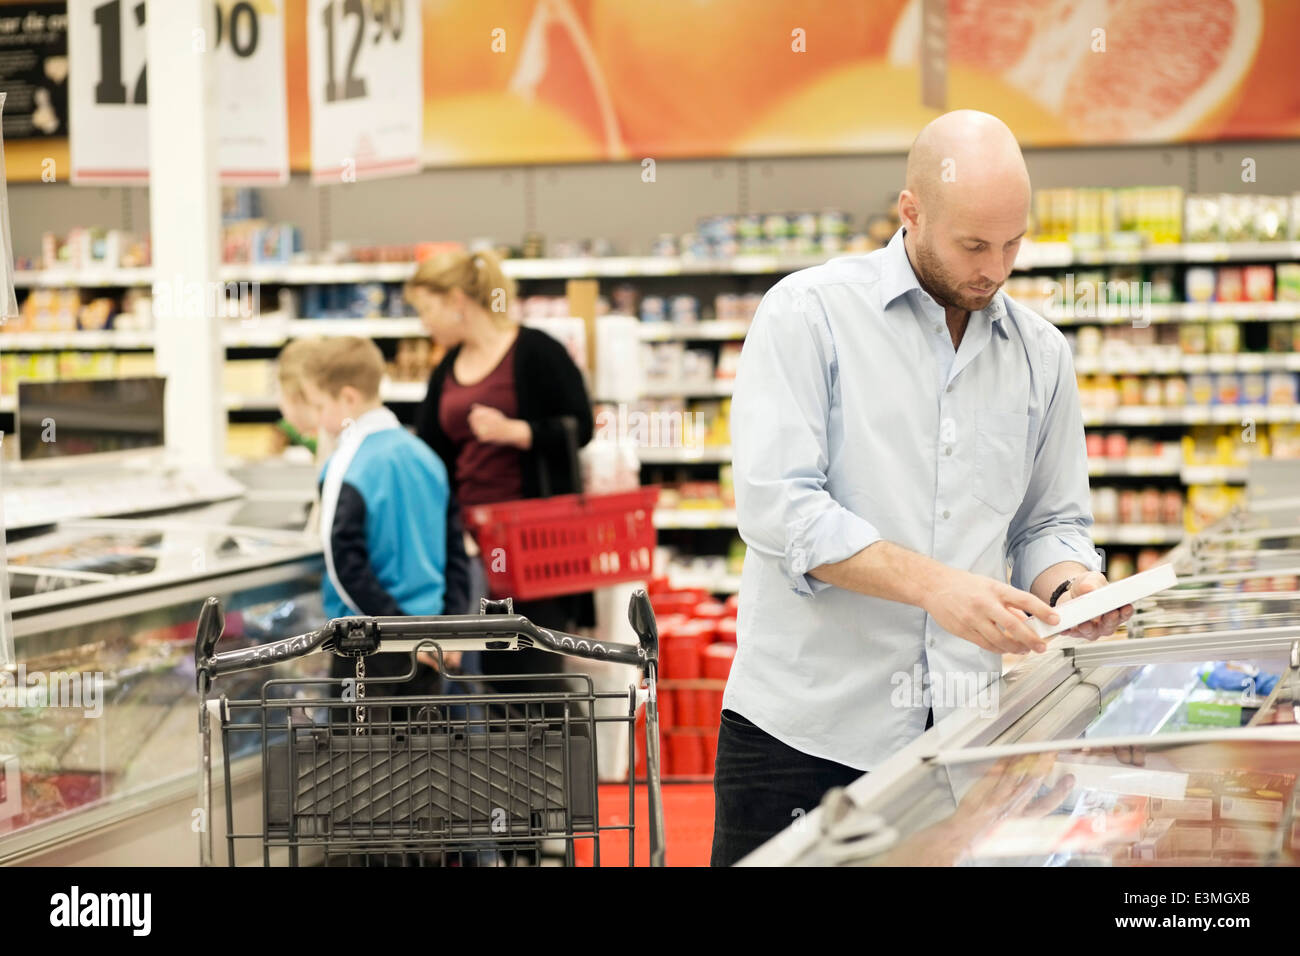 Mid adult man examining product with family in background in grocery store - Stock Image